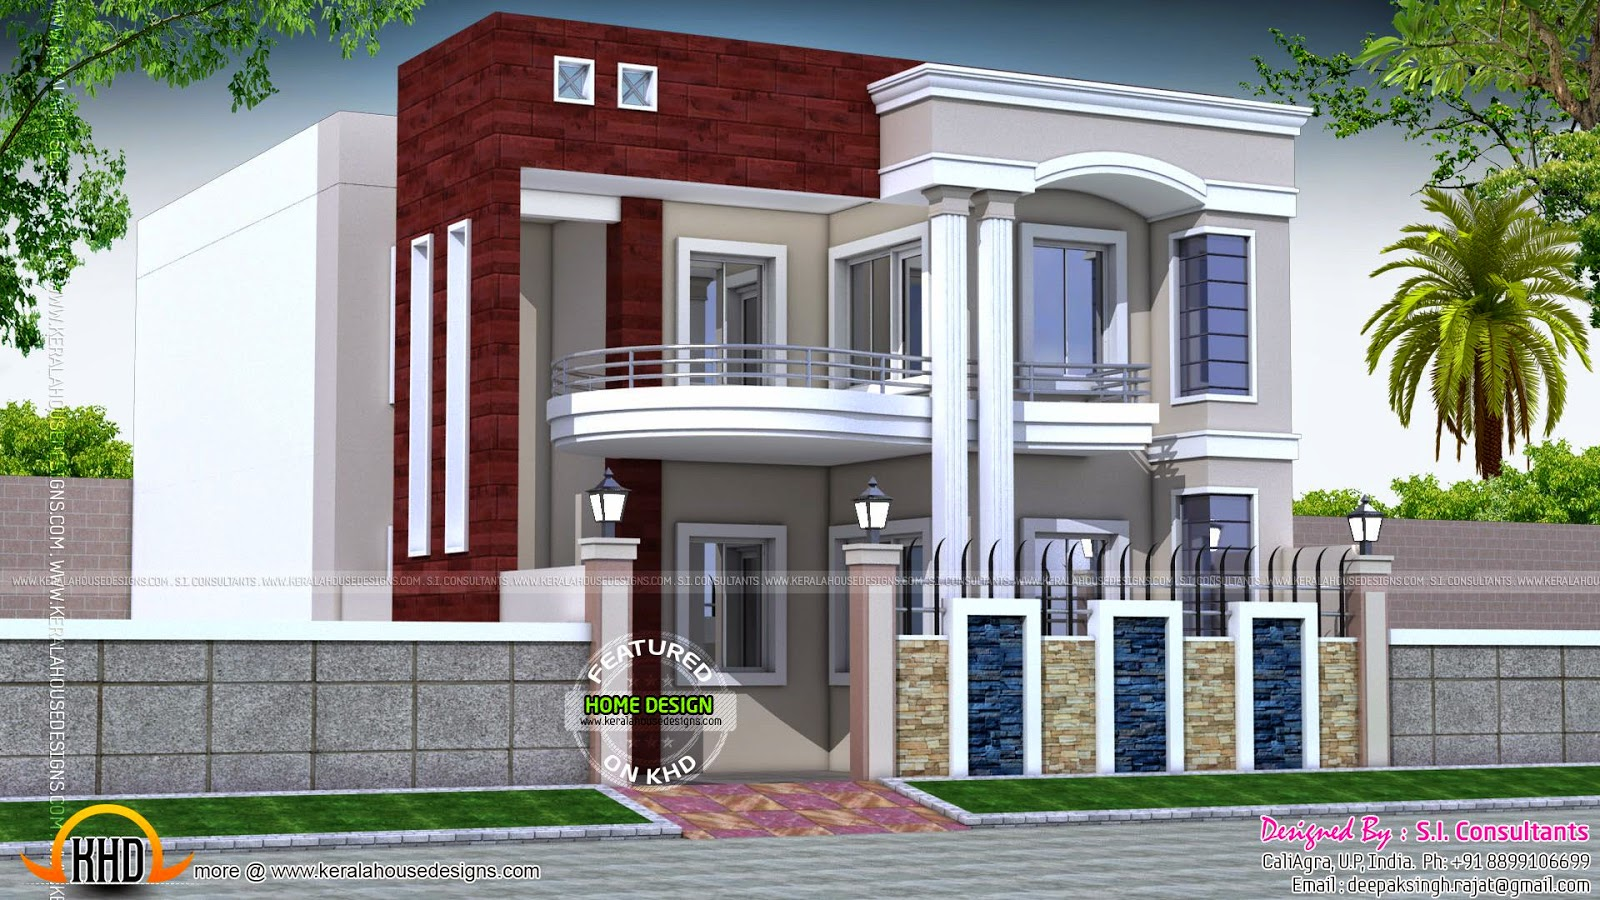 House design in north india kerala home design and floor Indian house structure design